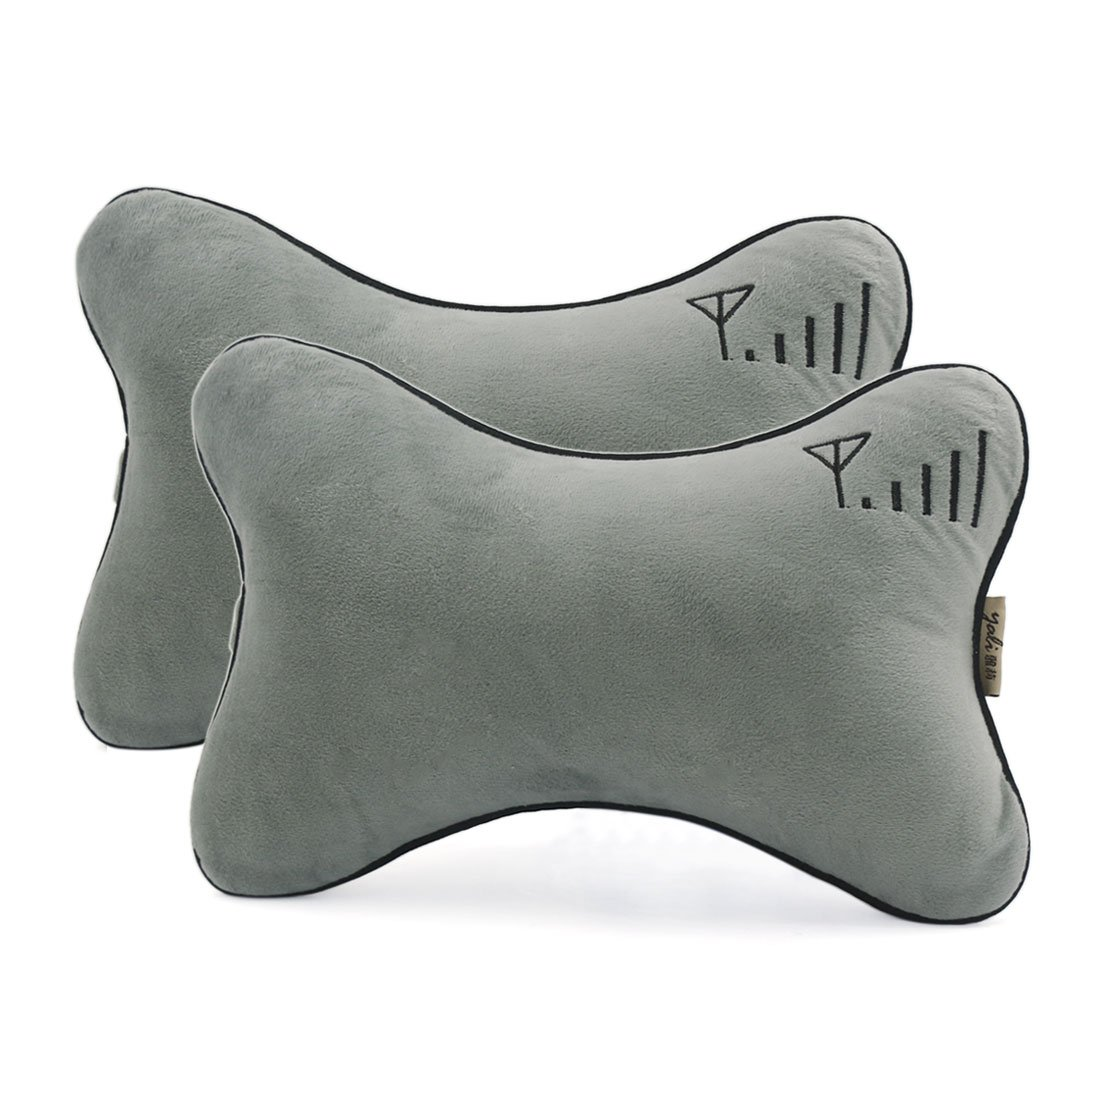 uxcell 2 Pcs Memory Foam Neck Pillow Car Seat Head Support Cushion Pad Gray